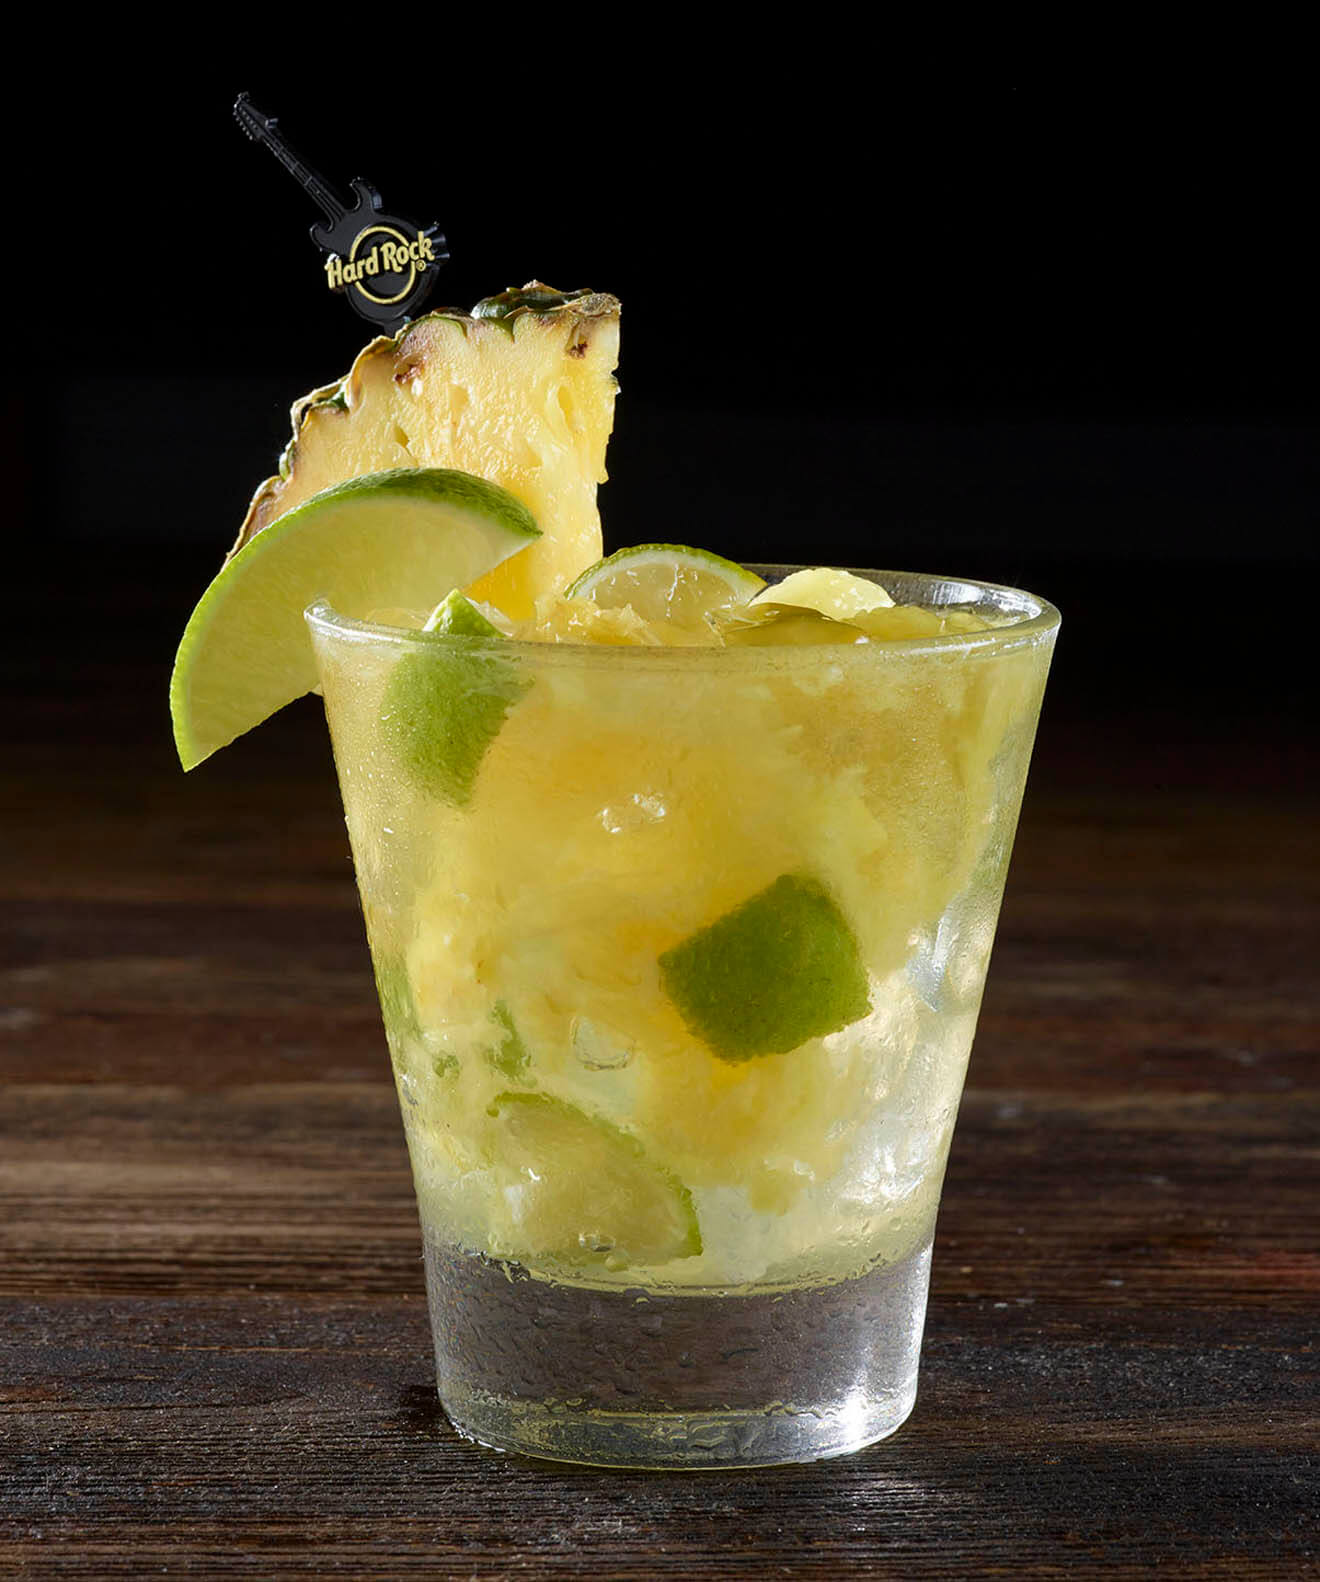 Hard Rock Cafe Pineapple Ginger Caipirinha